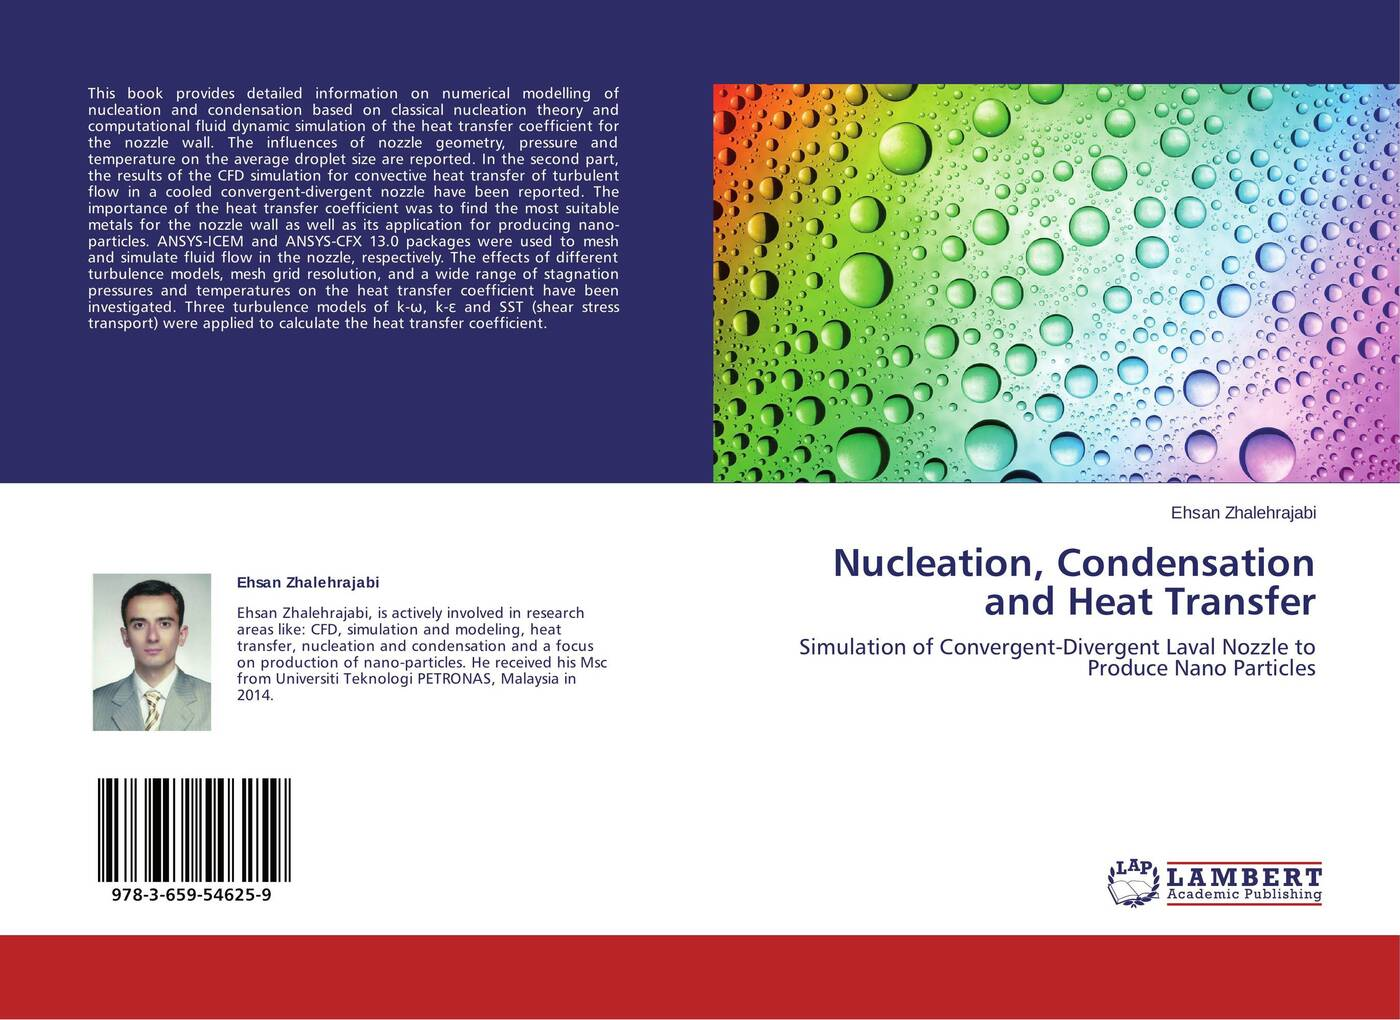 Фото - Ehsan Zhalehrajabi Nucleation, Condensation and Heat Transfer 2pcs heat press machine silicone pad mat 50x70x1cm high temperature resistant for heat transfer sublimation